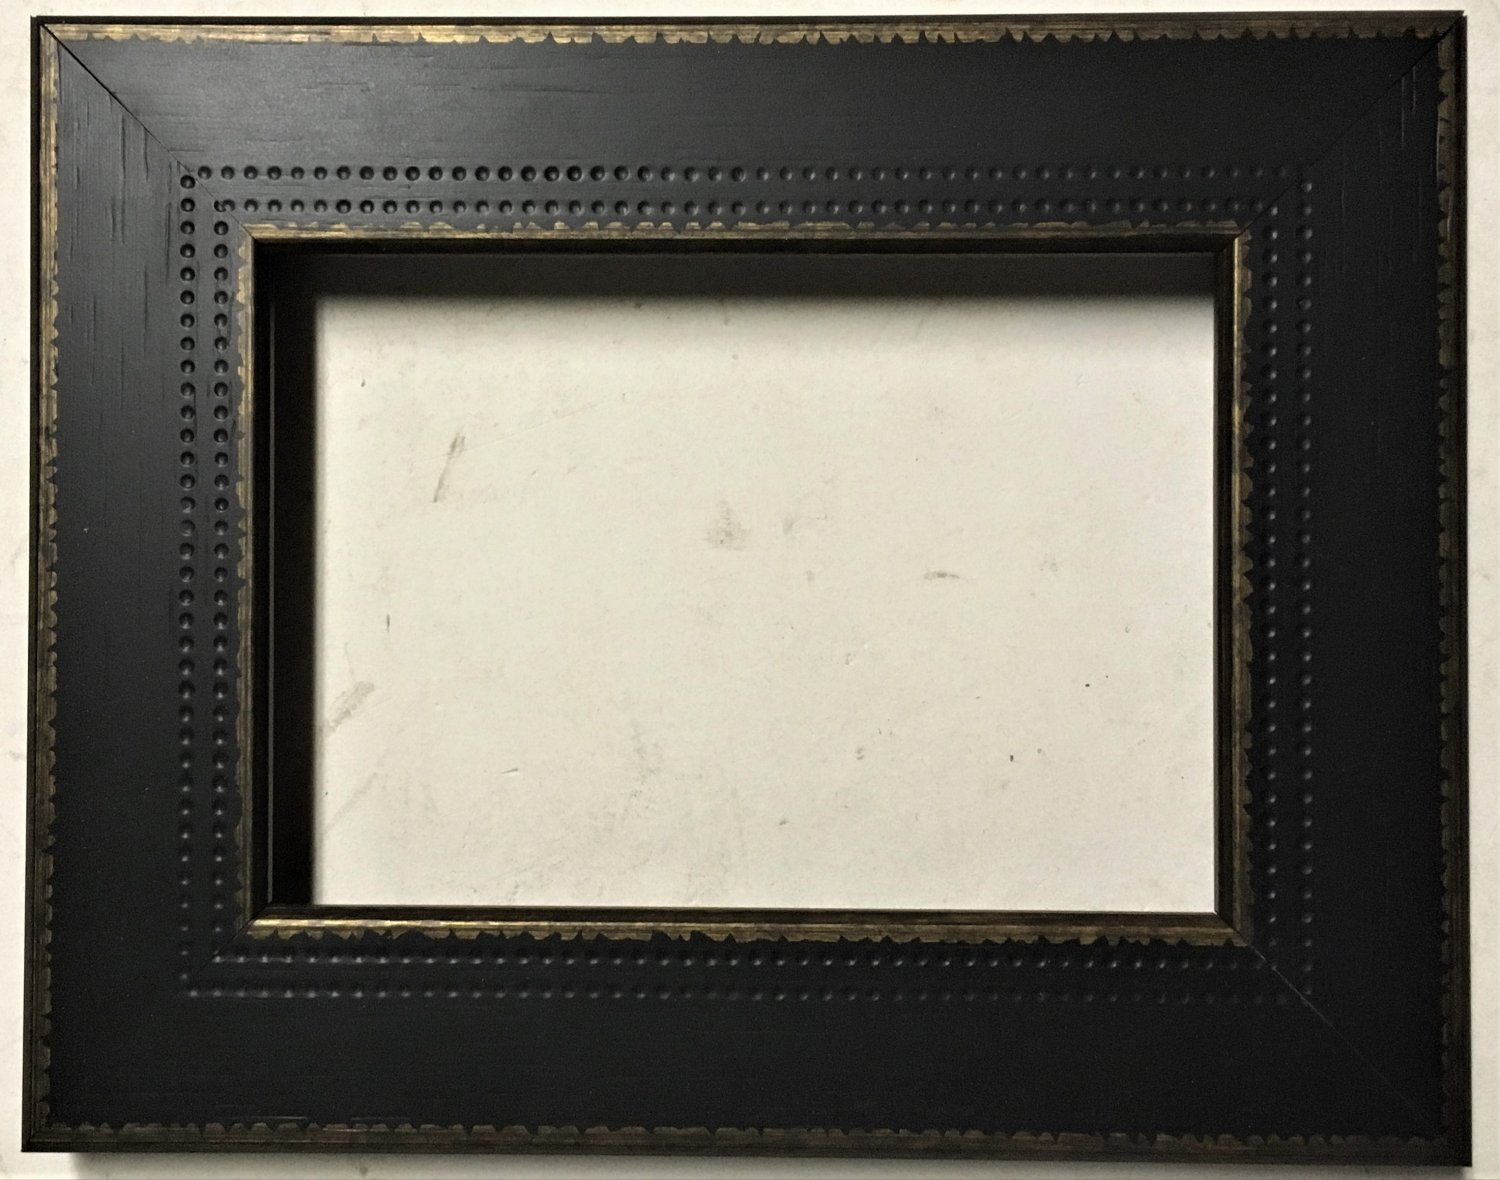 "9 x 9 1-3/4"" Black w/Gold Picture Frame"